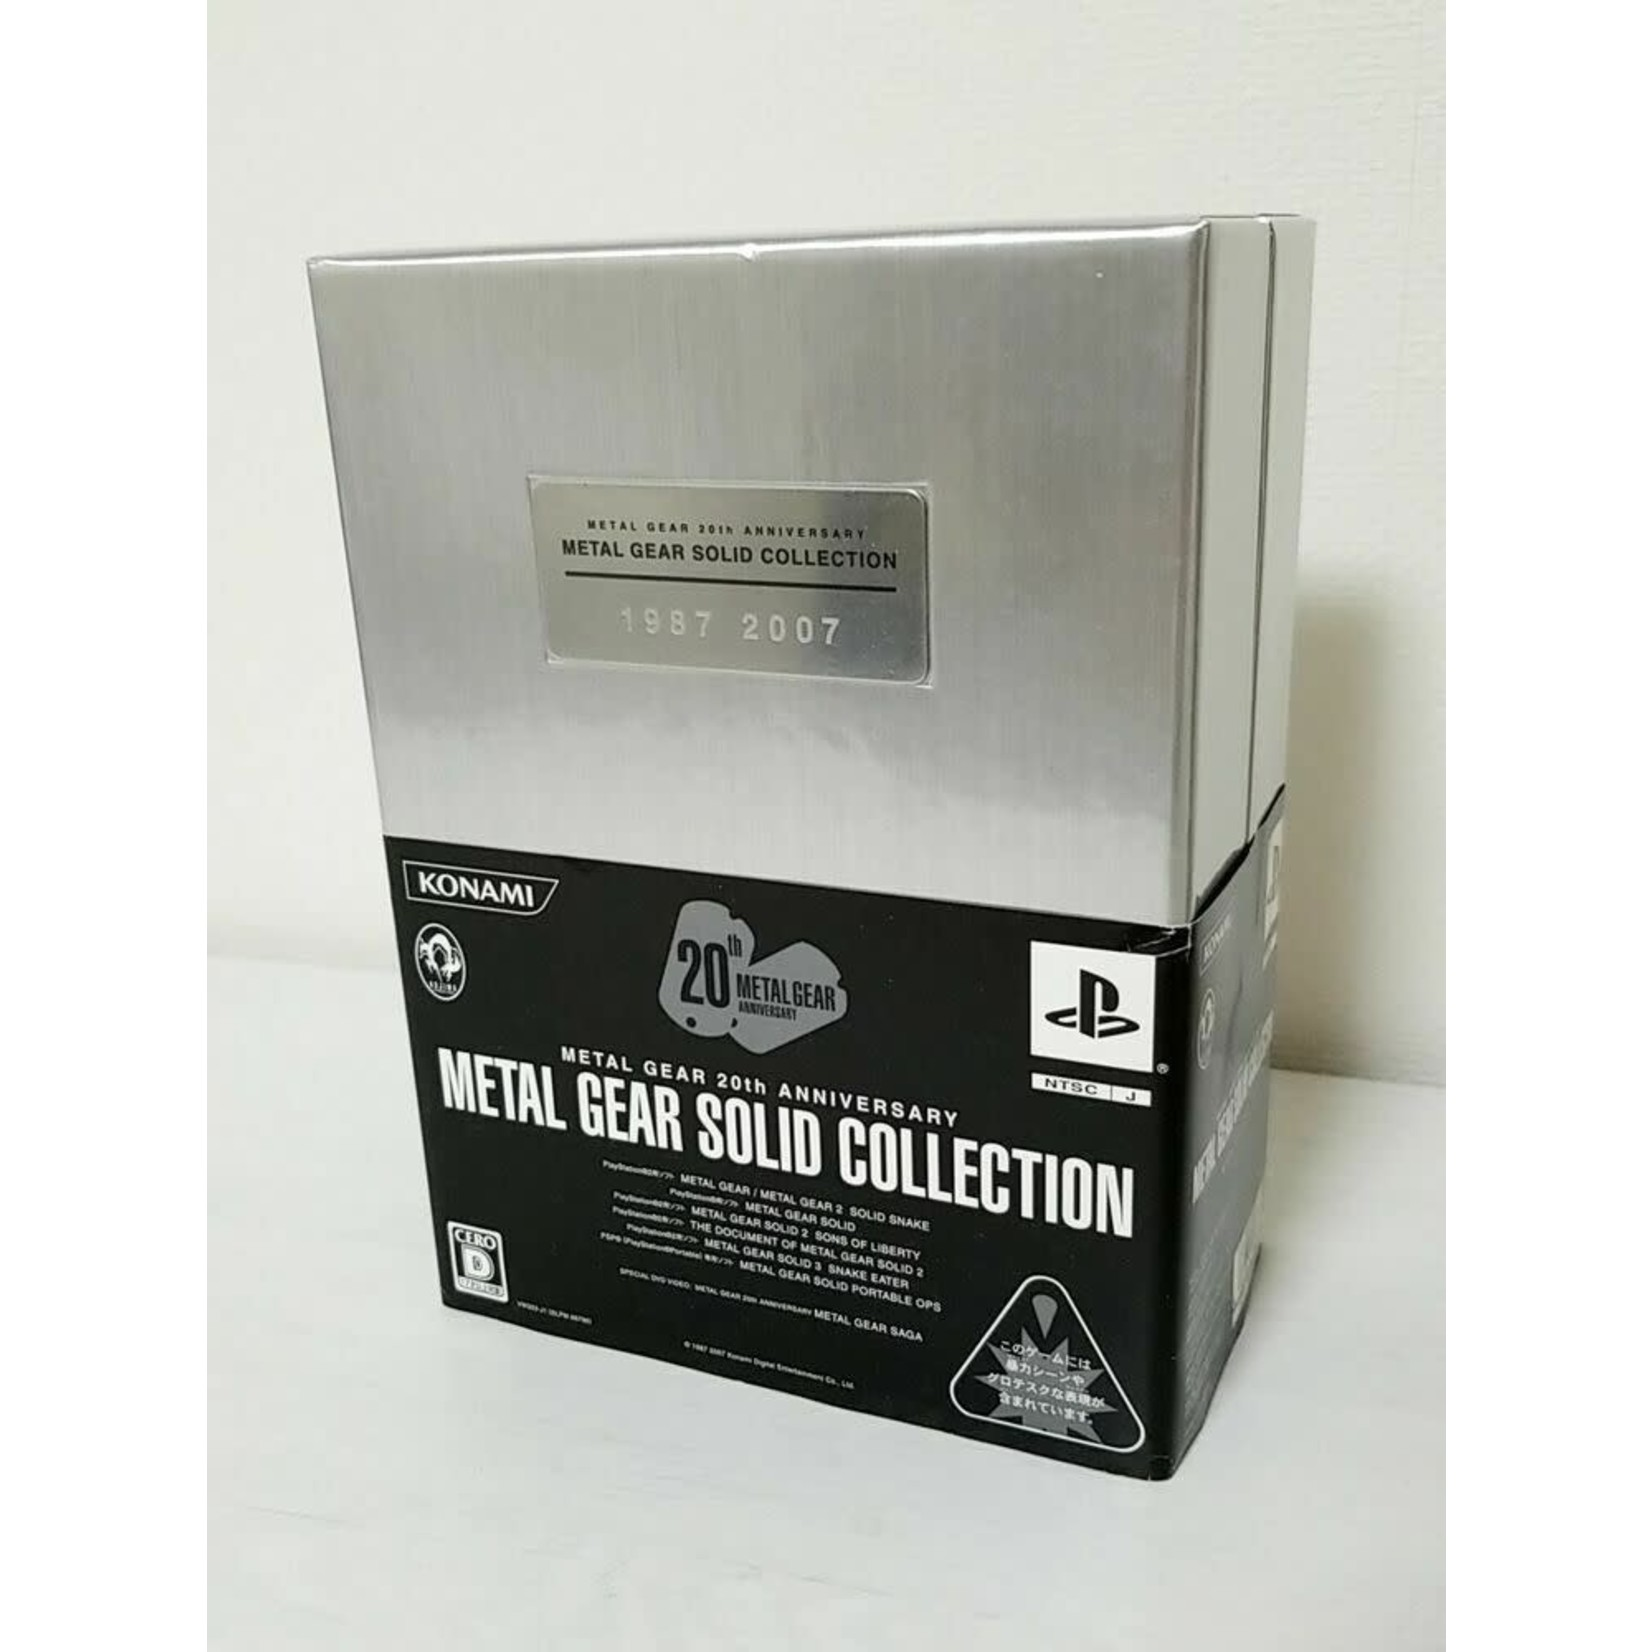 IMPORT-Metal Gear Solid 20th Anniversary: Metal Gear Solid Collection